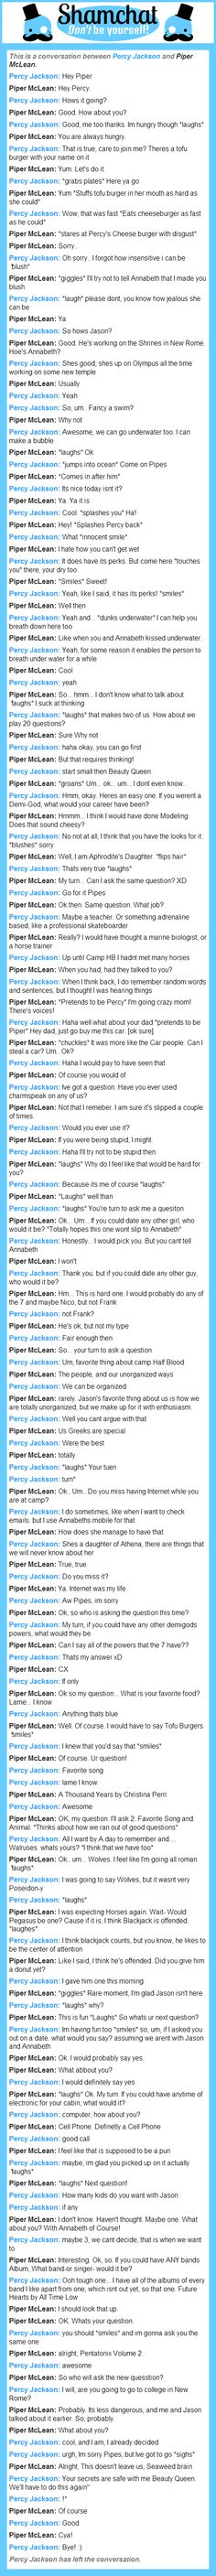 A conversation between Piper McLean and Percy Jackson